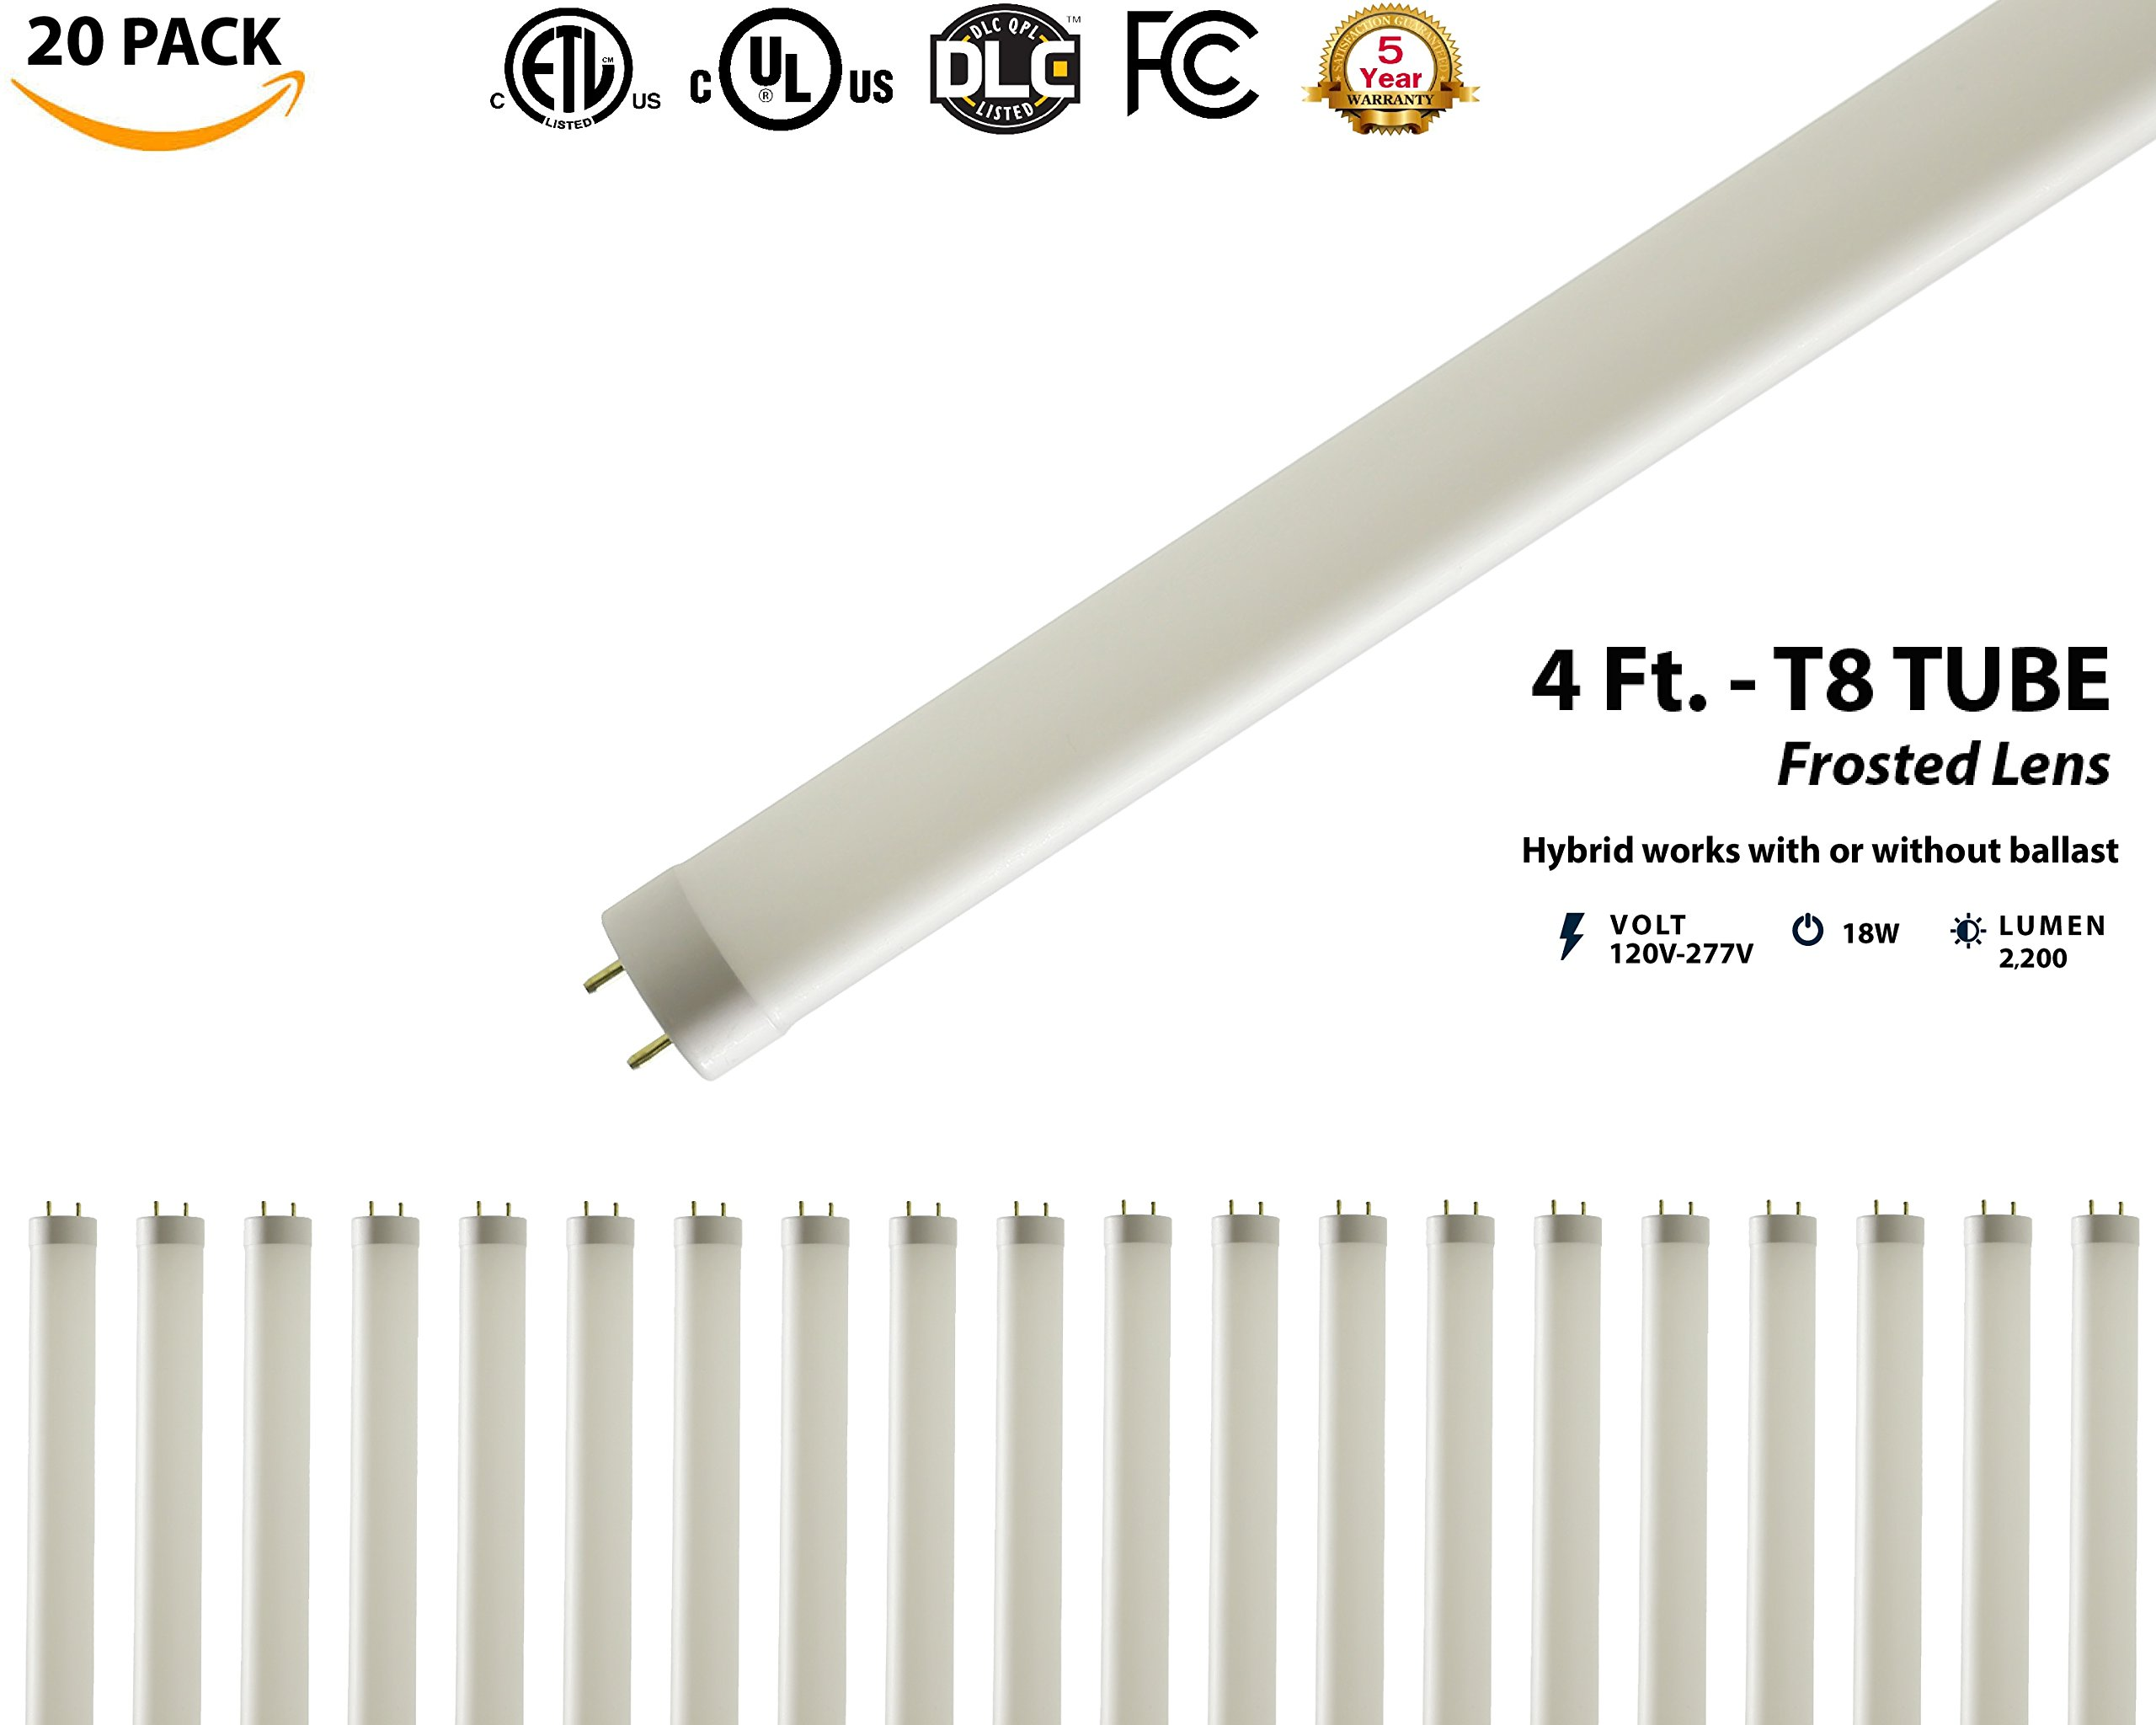 T8, T10, T12, 4FT LED Glass Tube Light (20 Pack) 18W; 2,200 Lumens; Cool-White 4000K; AC120-277V; Works with existing ballast or bypass ballast either one-end direct or two-end direct; UL & DLC